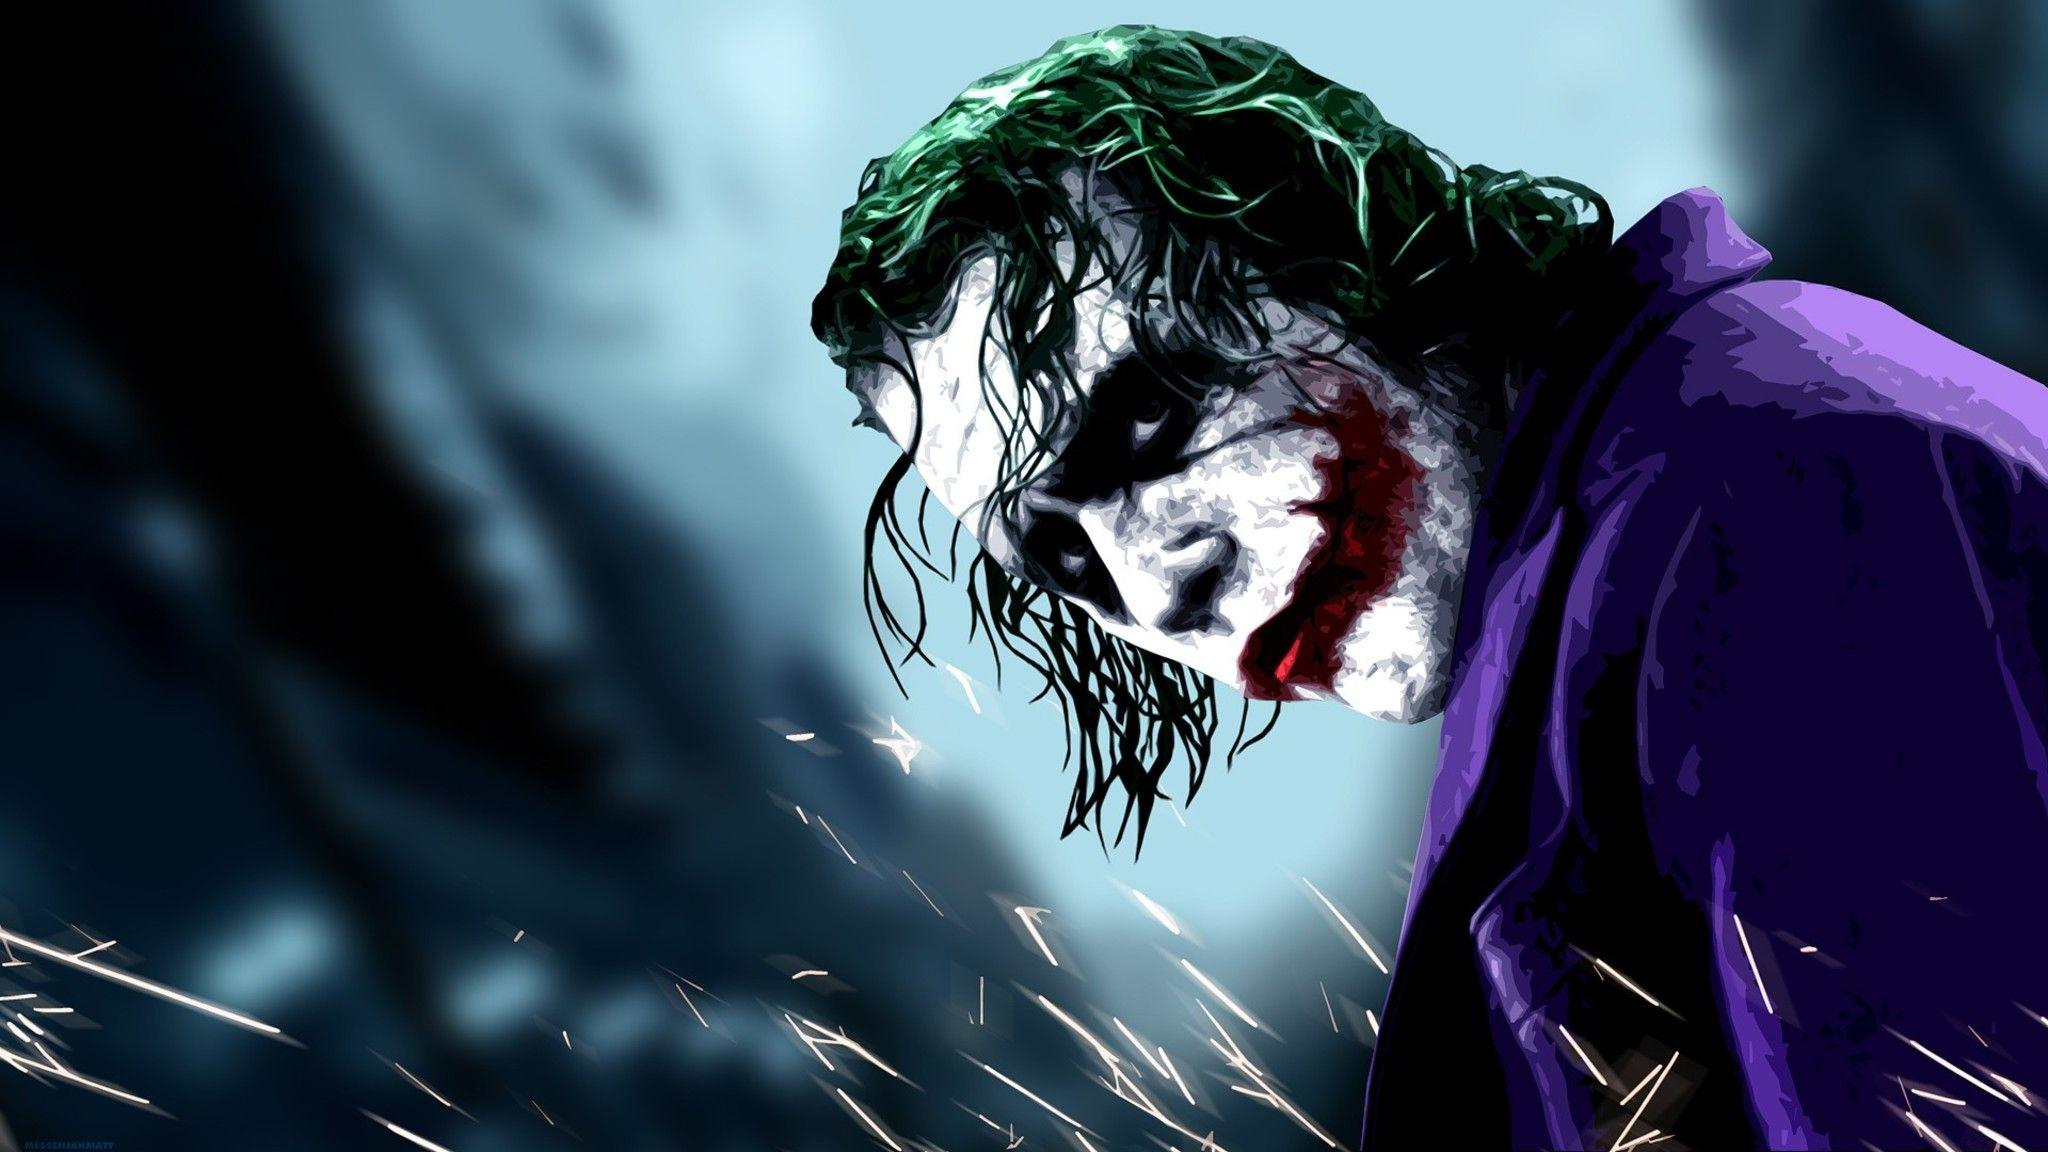 Joker Pc Wallpapers Wallpaper Cave